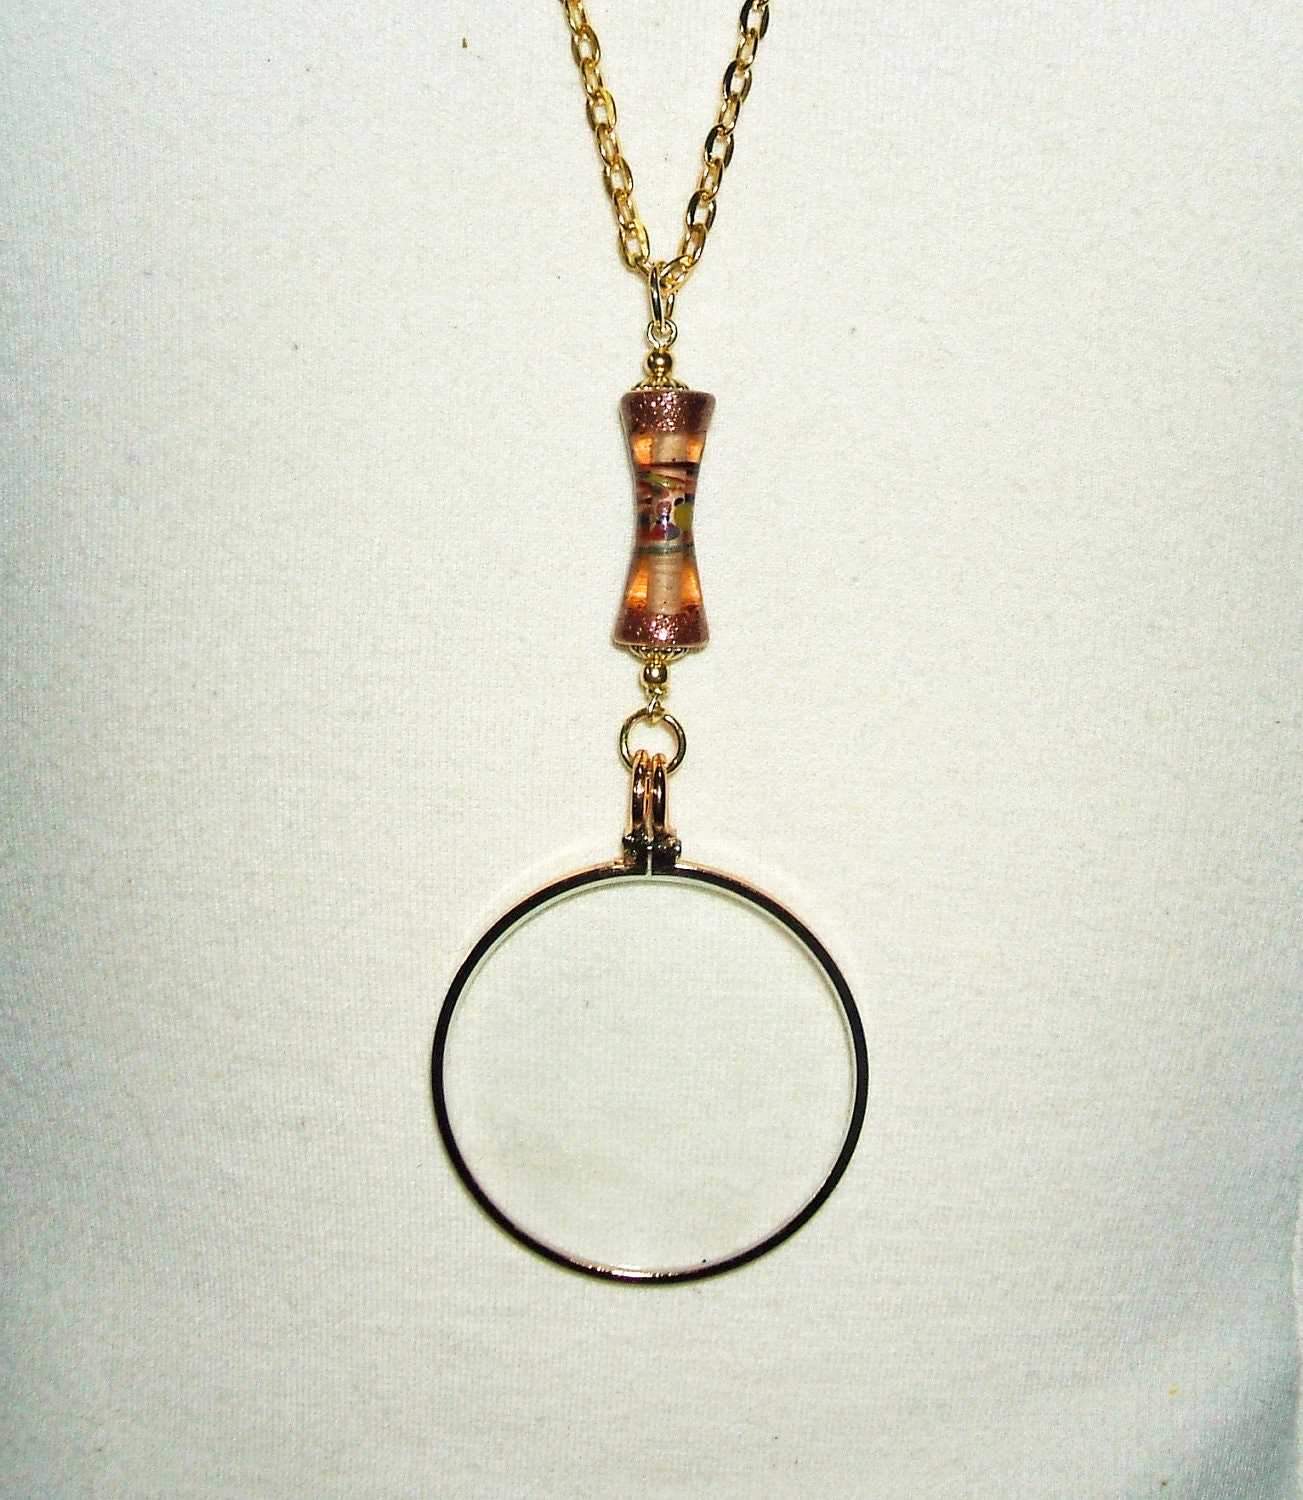 magnifying glass necklace pendant lwork glass bead